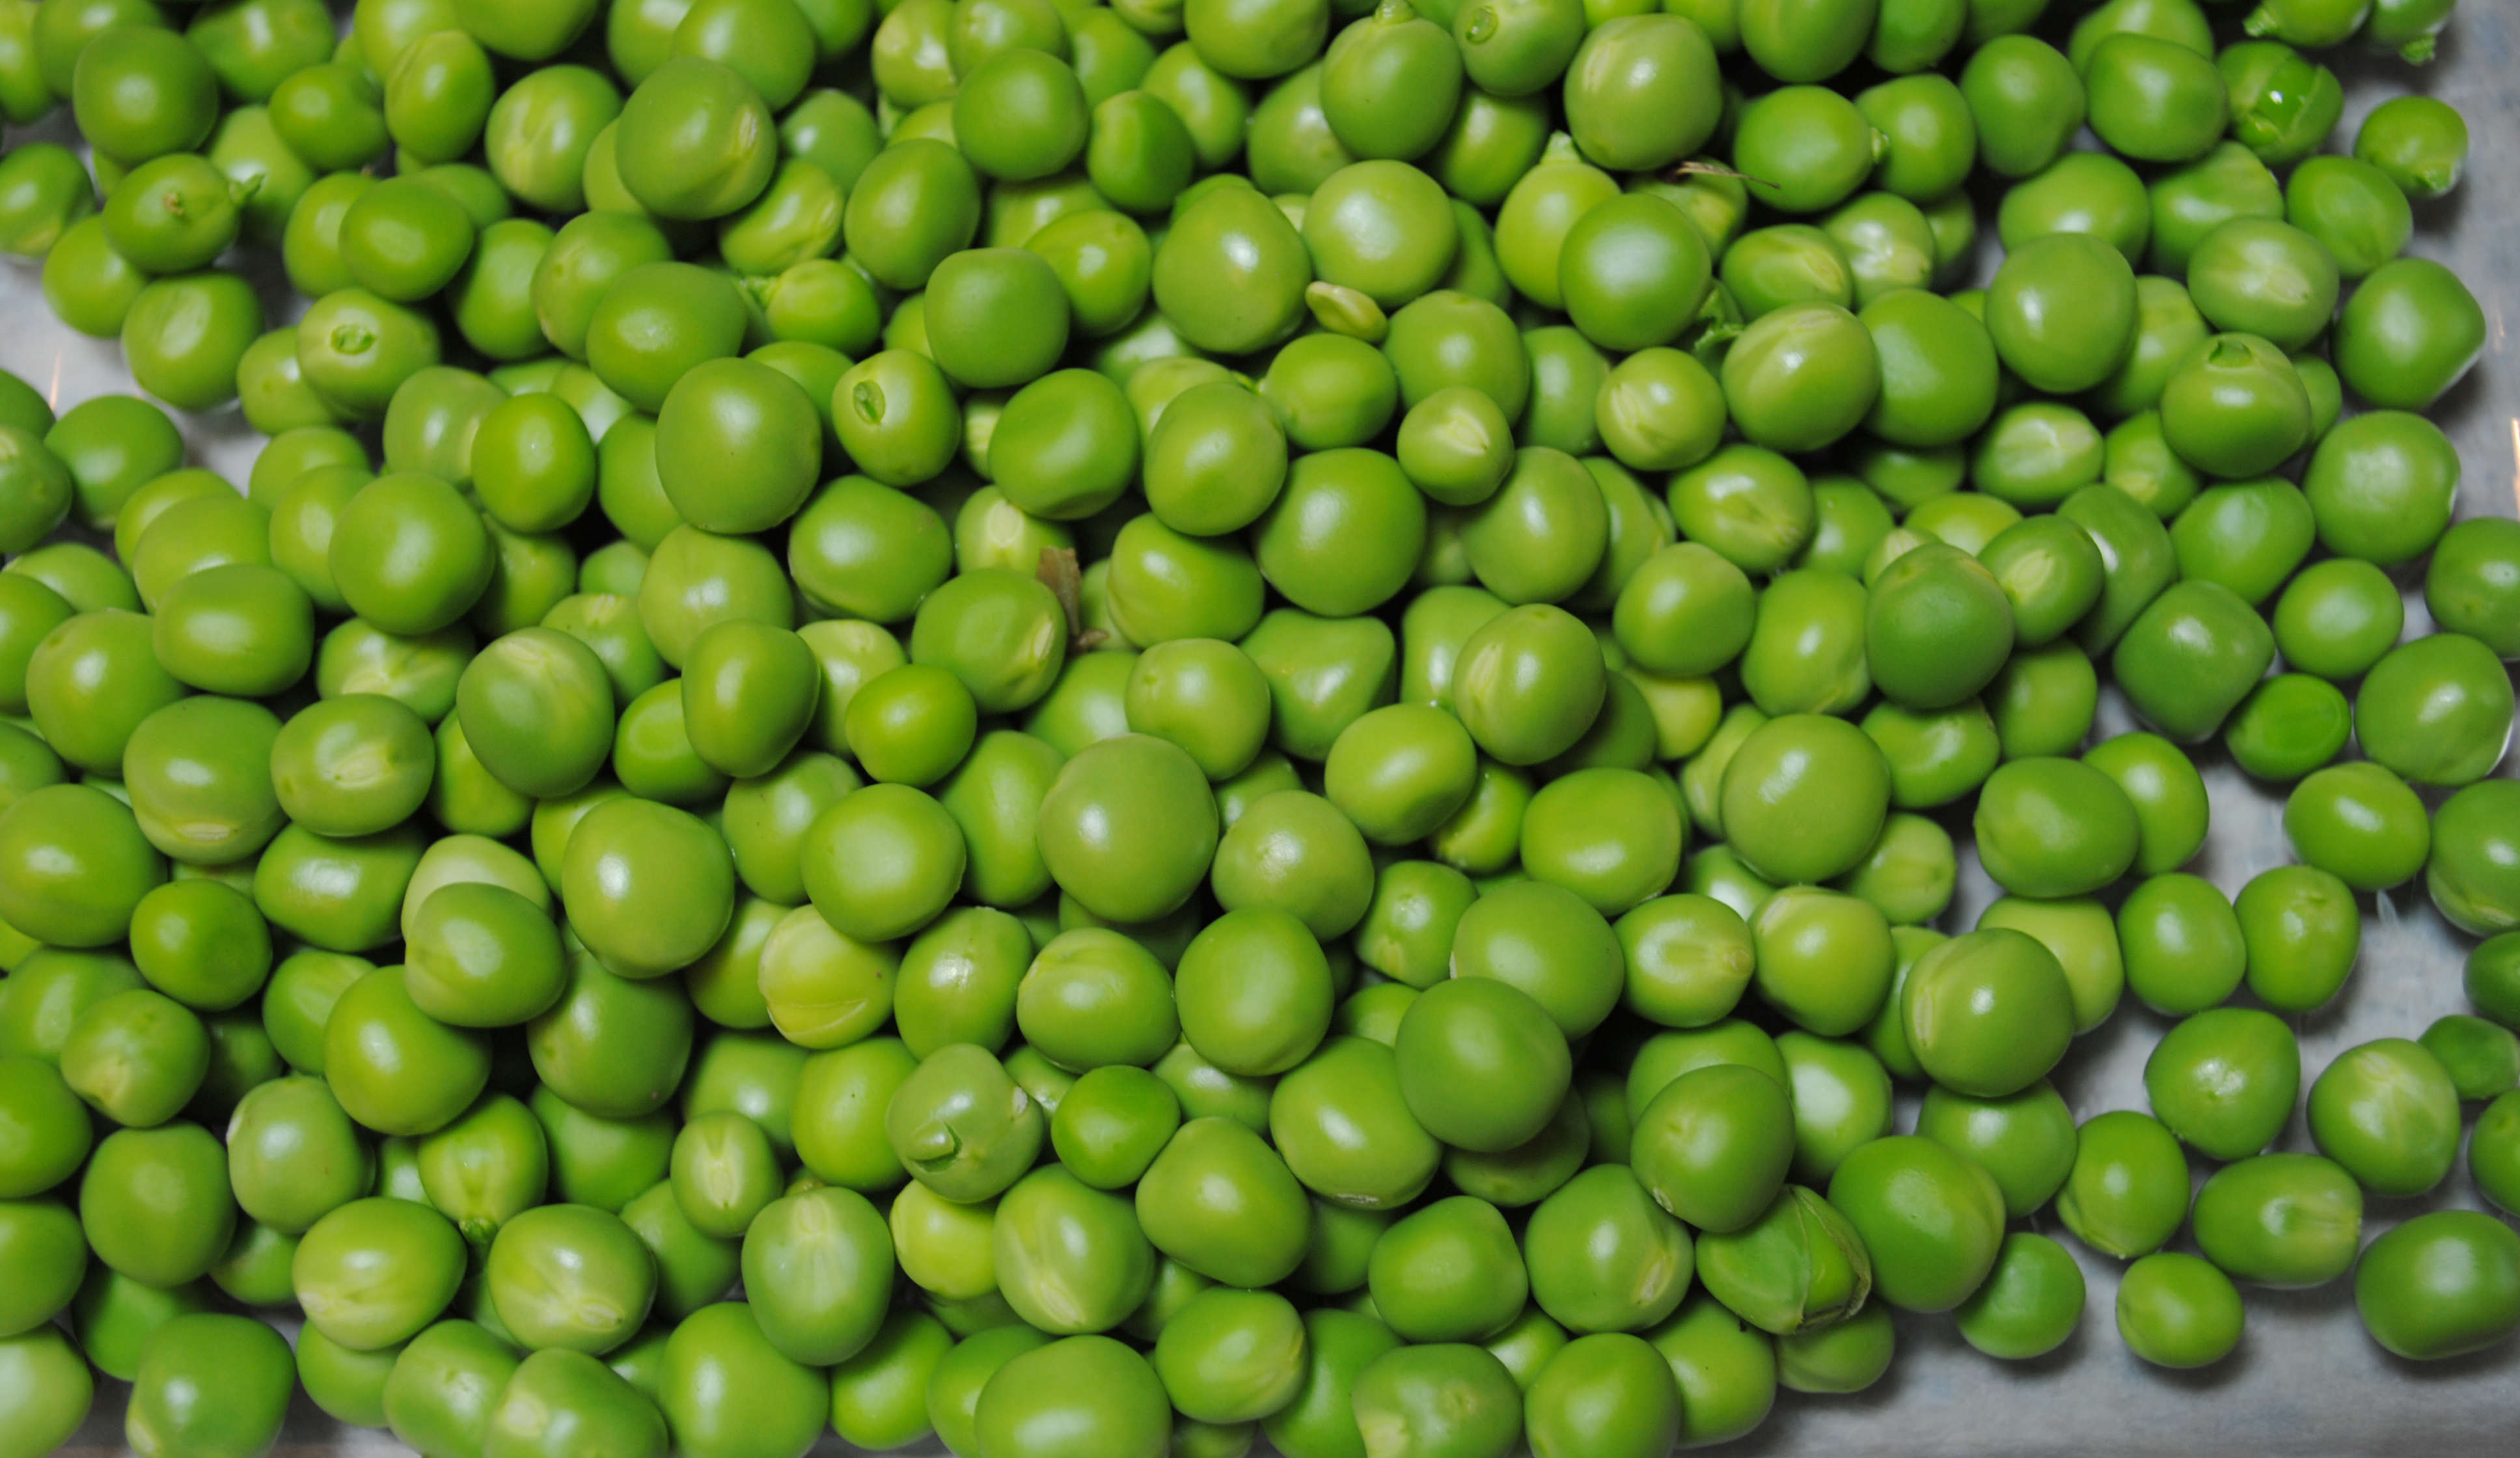 A $1.79 packet of peas will yield several-fold dollars of fresh peas.